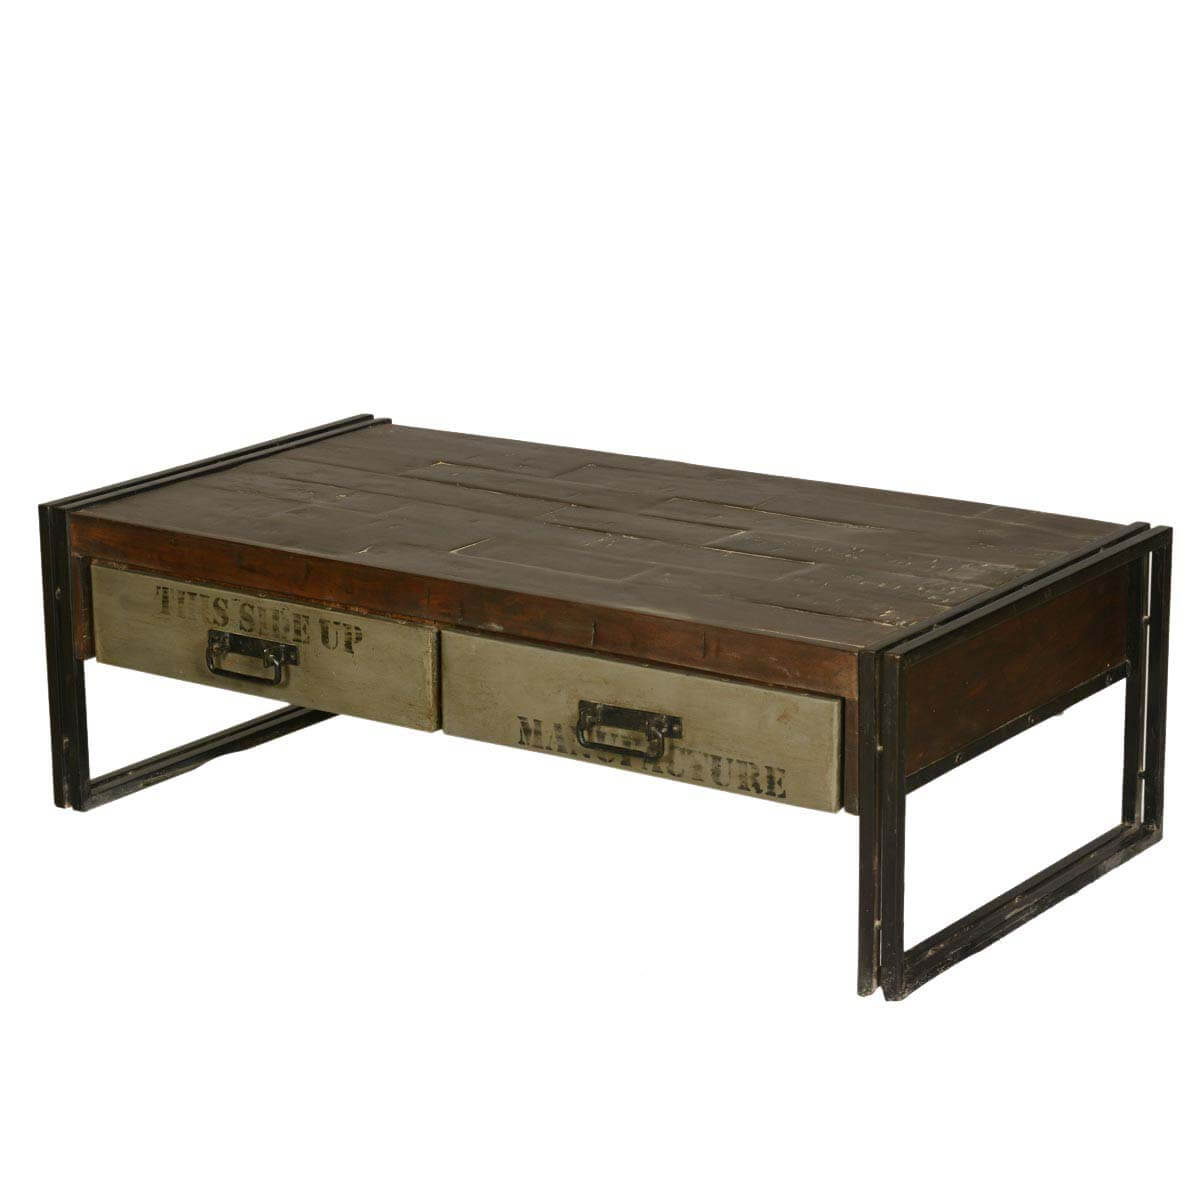 Philadelphia modern rustic reclaimed wood metal coffee table Coffee tables rustic